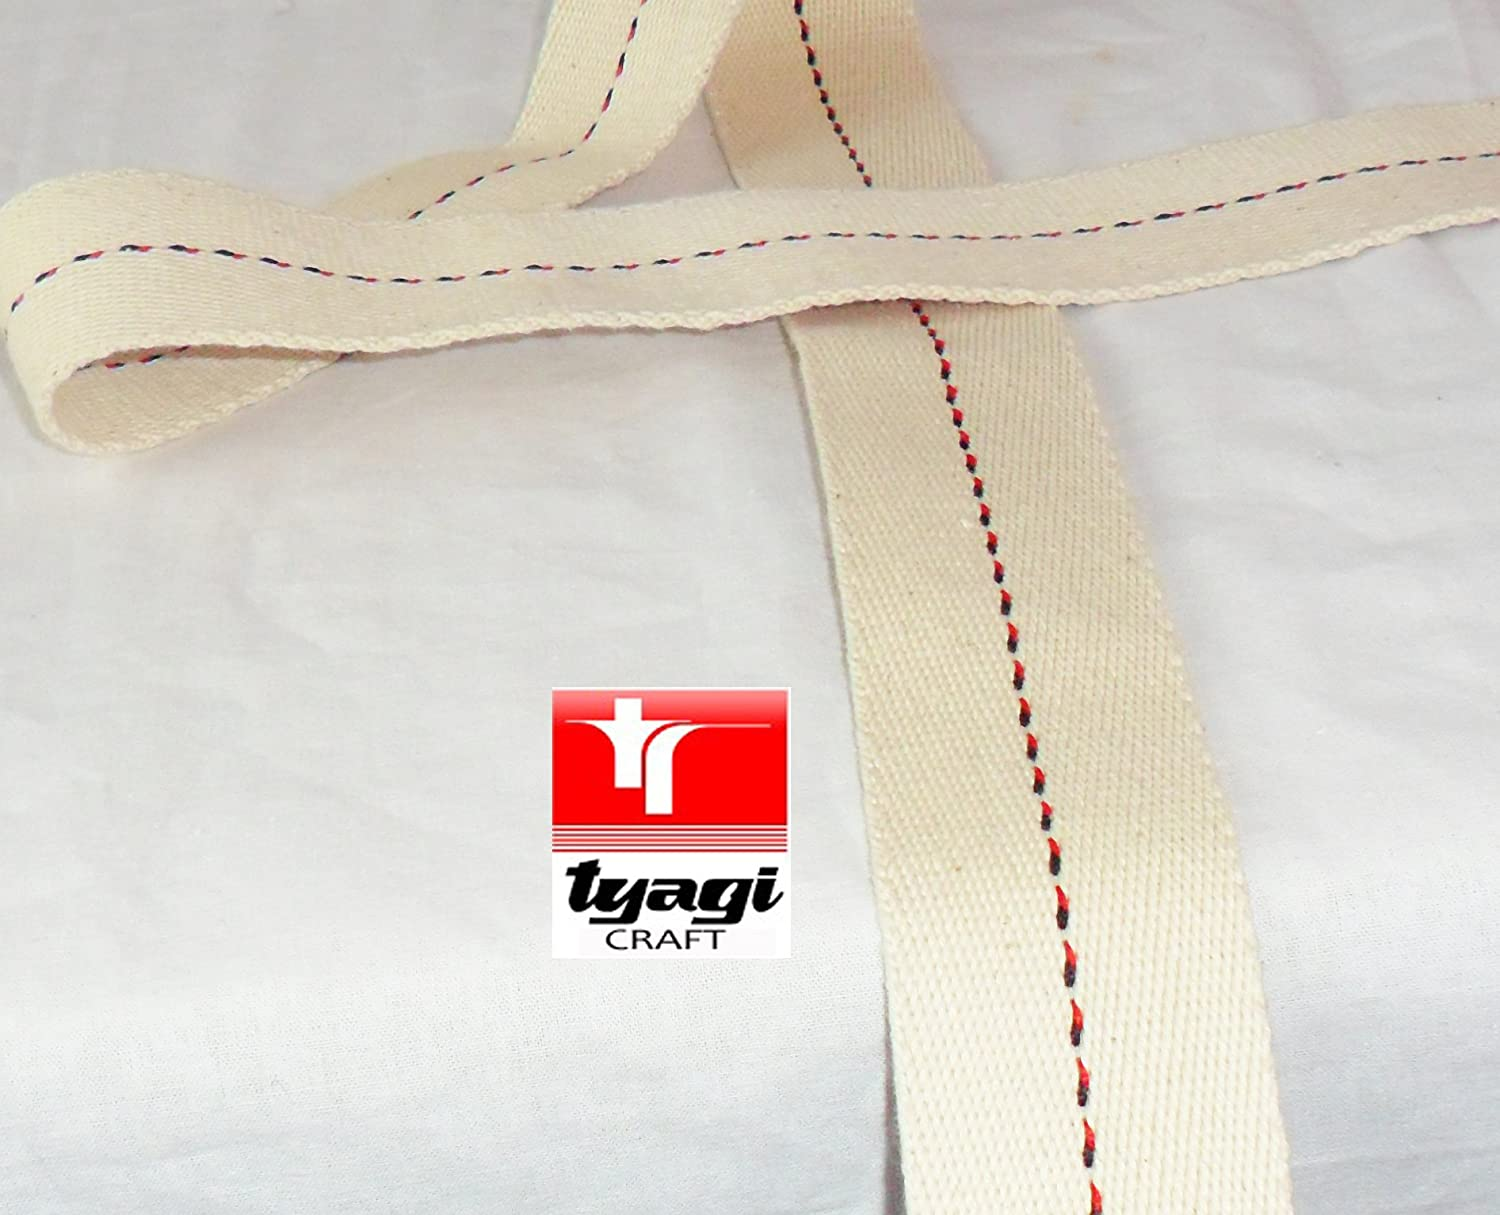 39mm wide Pure Cotton Thick Tape Thick Webbing Strap Tent Upholestry Bags Sturdy Cotton Straps Harness Craft Black and Red Dotted Centre Line 1 Meter Tyagi Craft